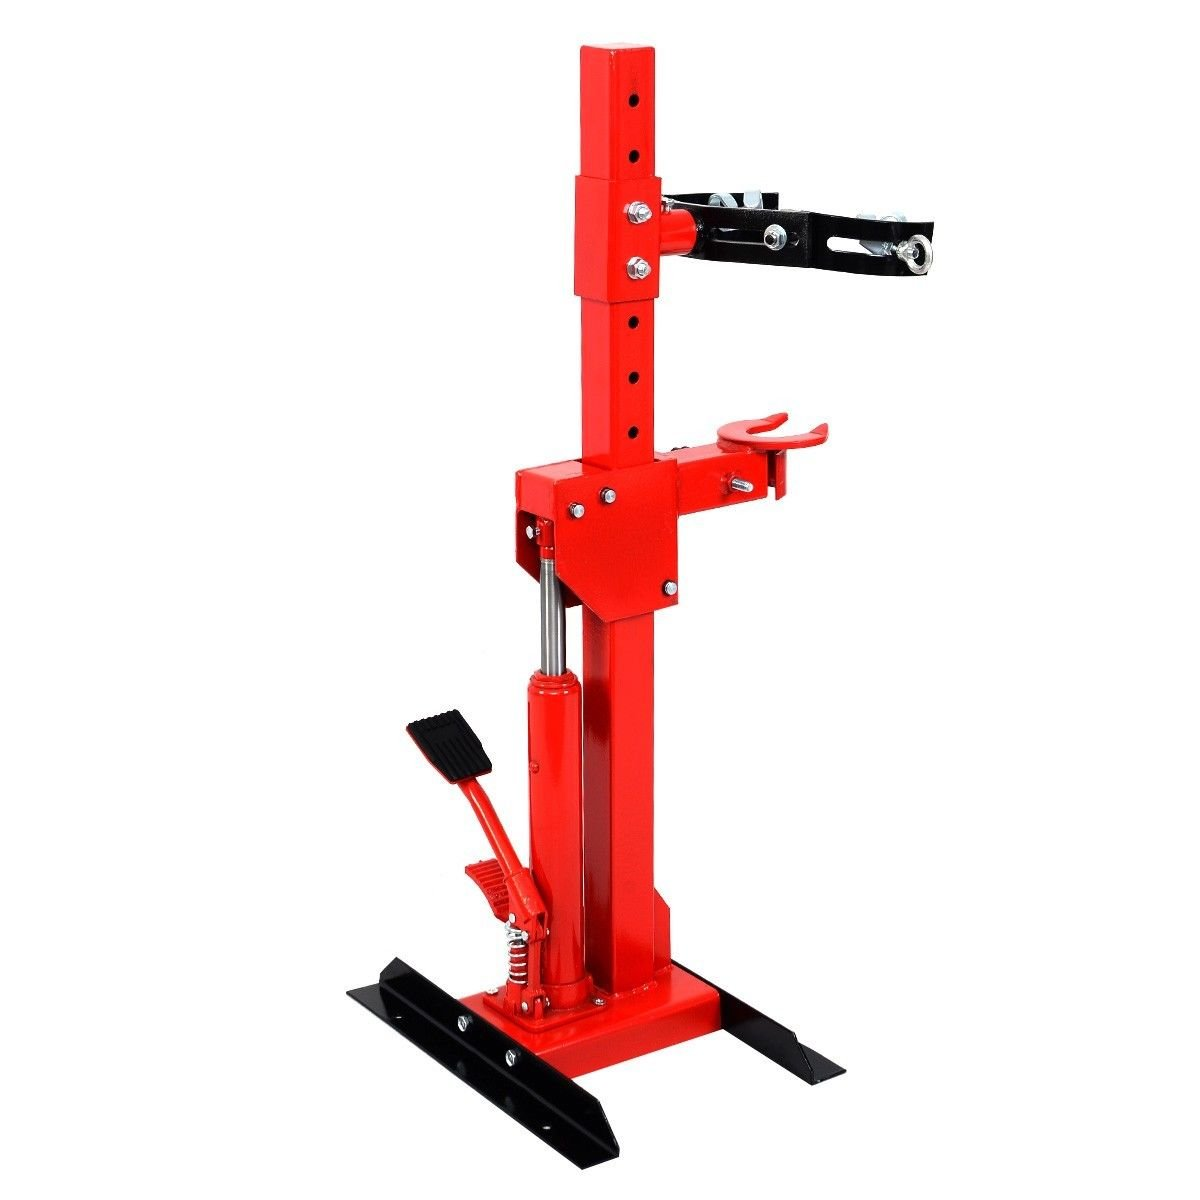 Globe House Products GHP 2200-Lbs Compressing Force Capacity Strut Coil Spring Compressor Hydraulic Tool by Globe House Products (Image #1)